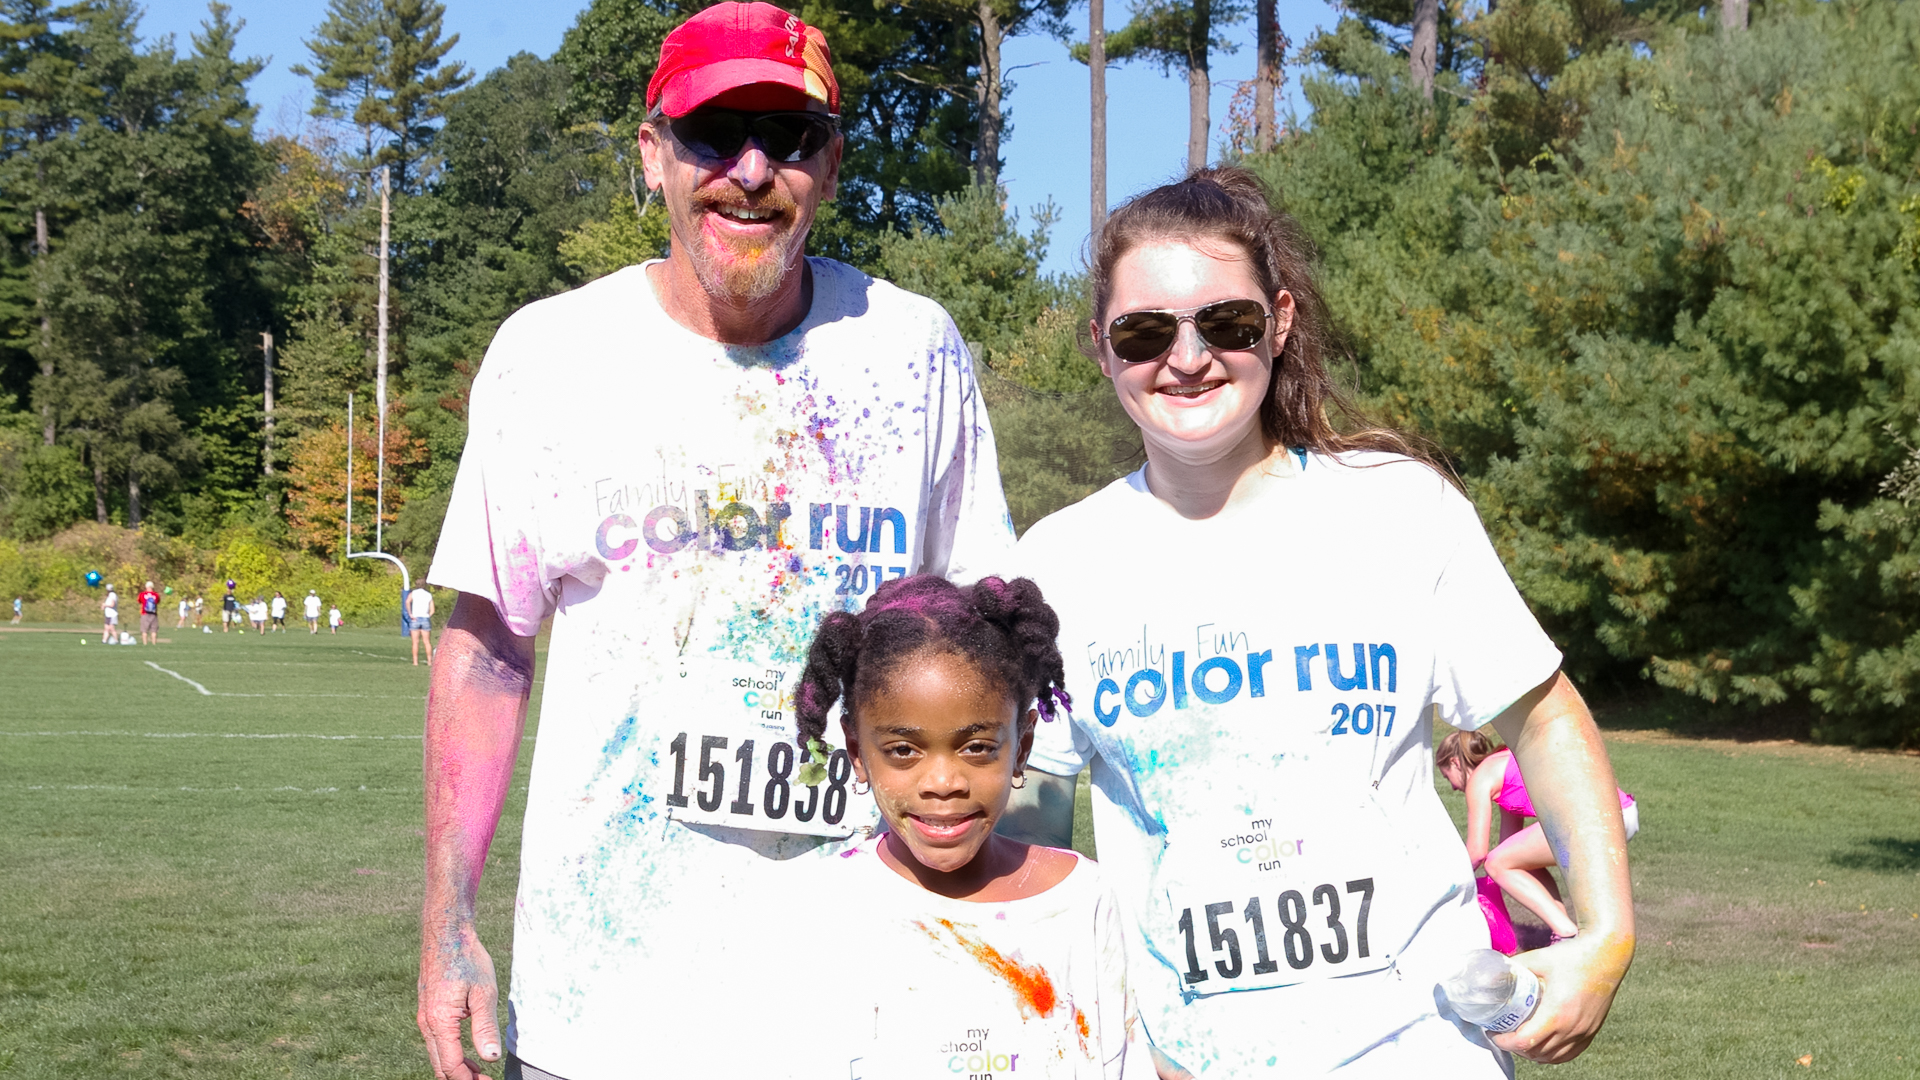 Color Run Cropped and Edited 1920 x 1080_24.jpg